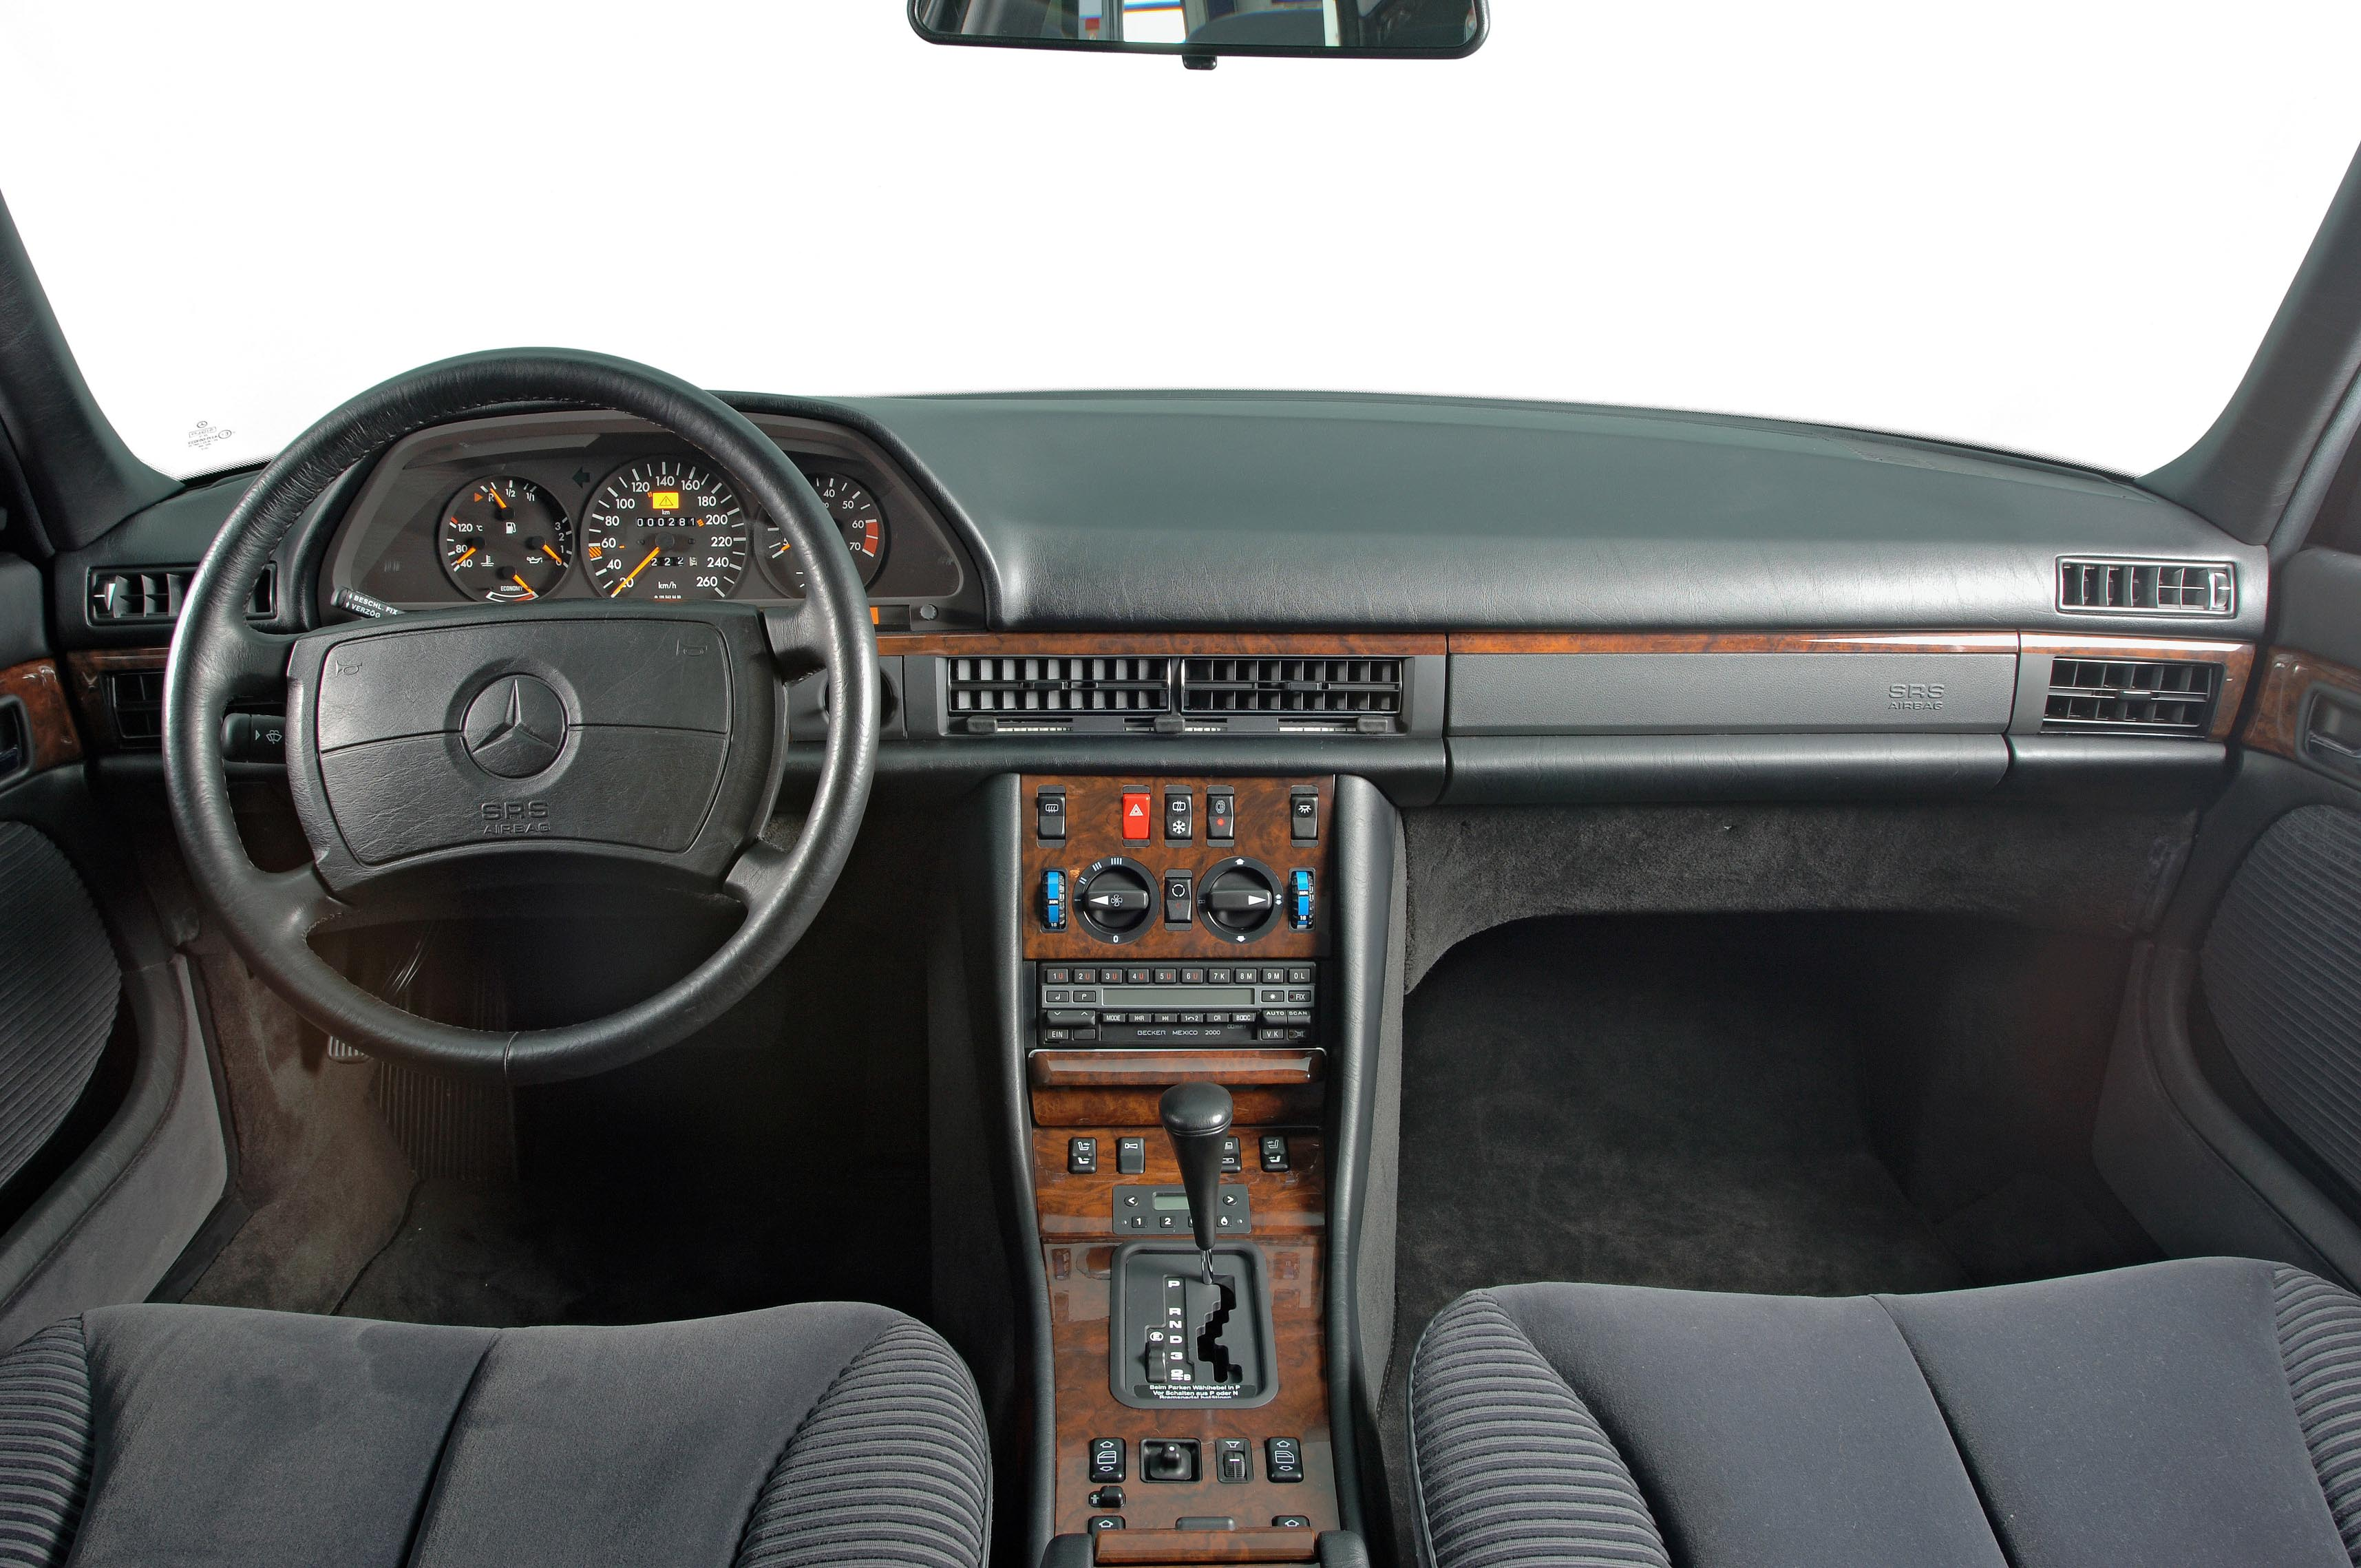 The Mercedes-Benz supplementary restraint system or SRS brought seat belt tensioners and airbags together into the now classic cabin of this S-Class W126 sedan.